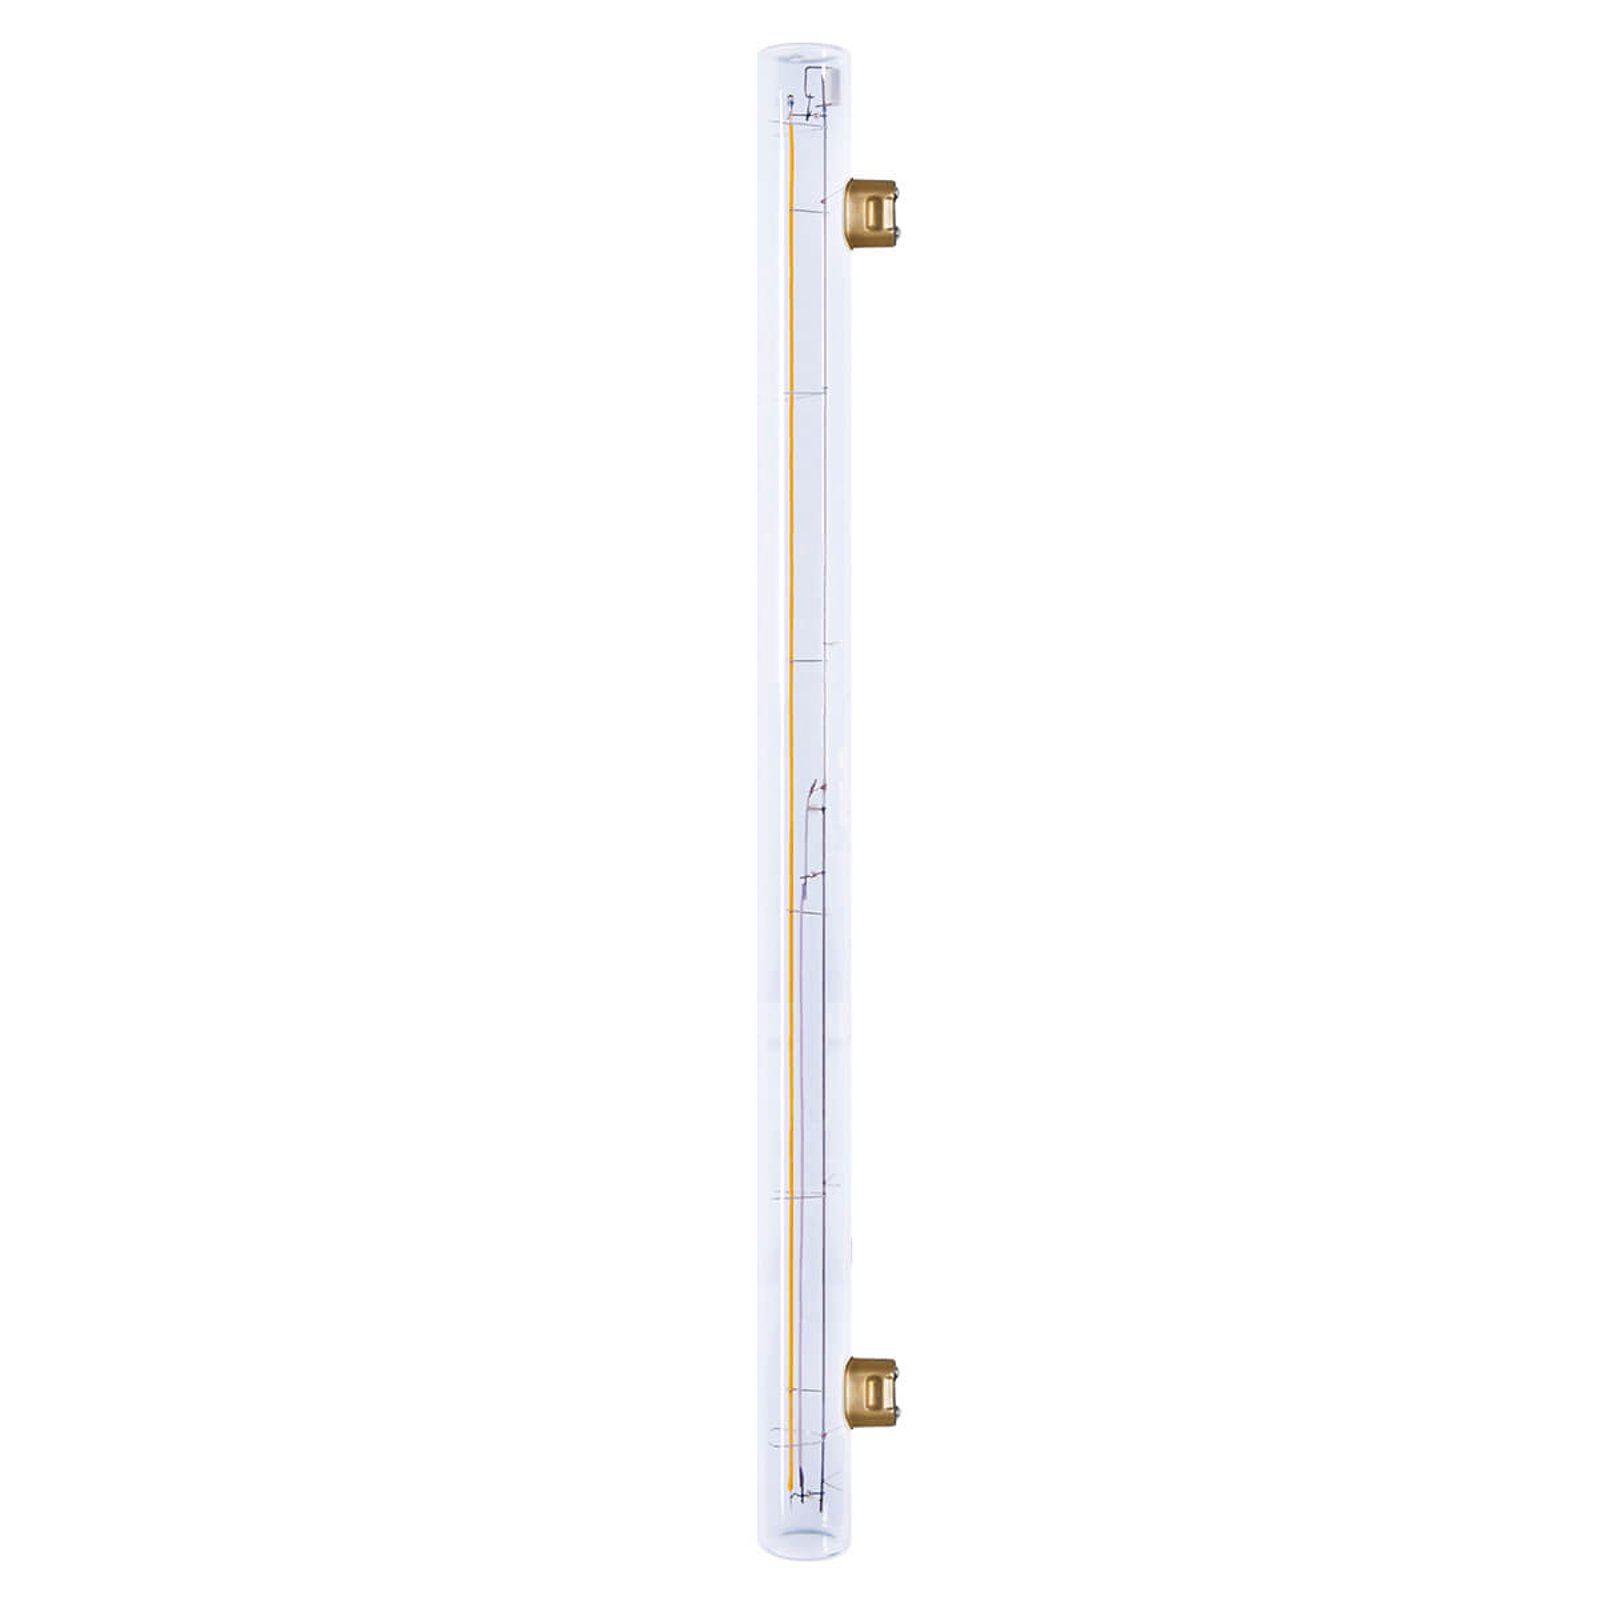 S14s 12W 922 LED-Linienlampe, 500 mm